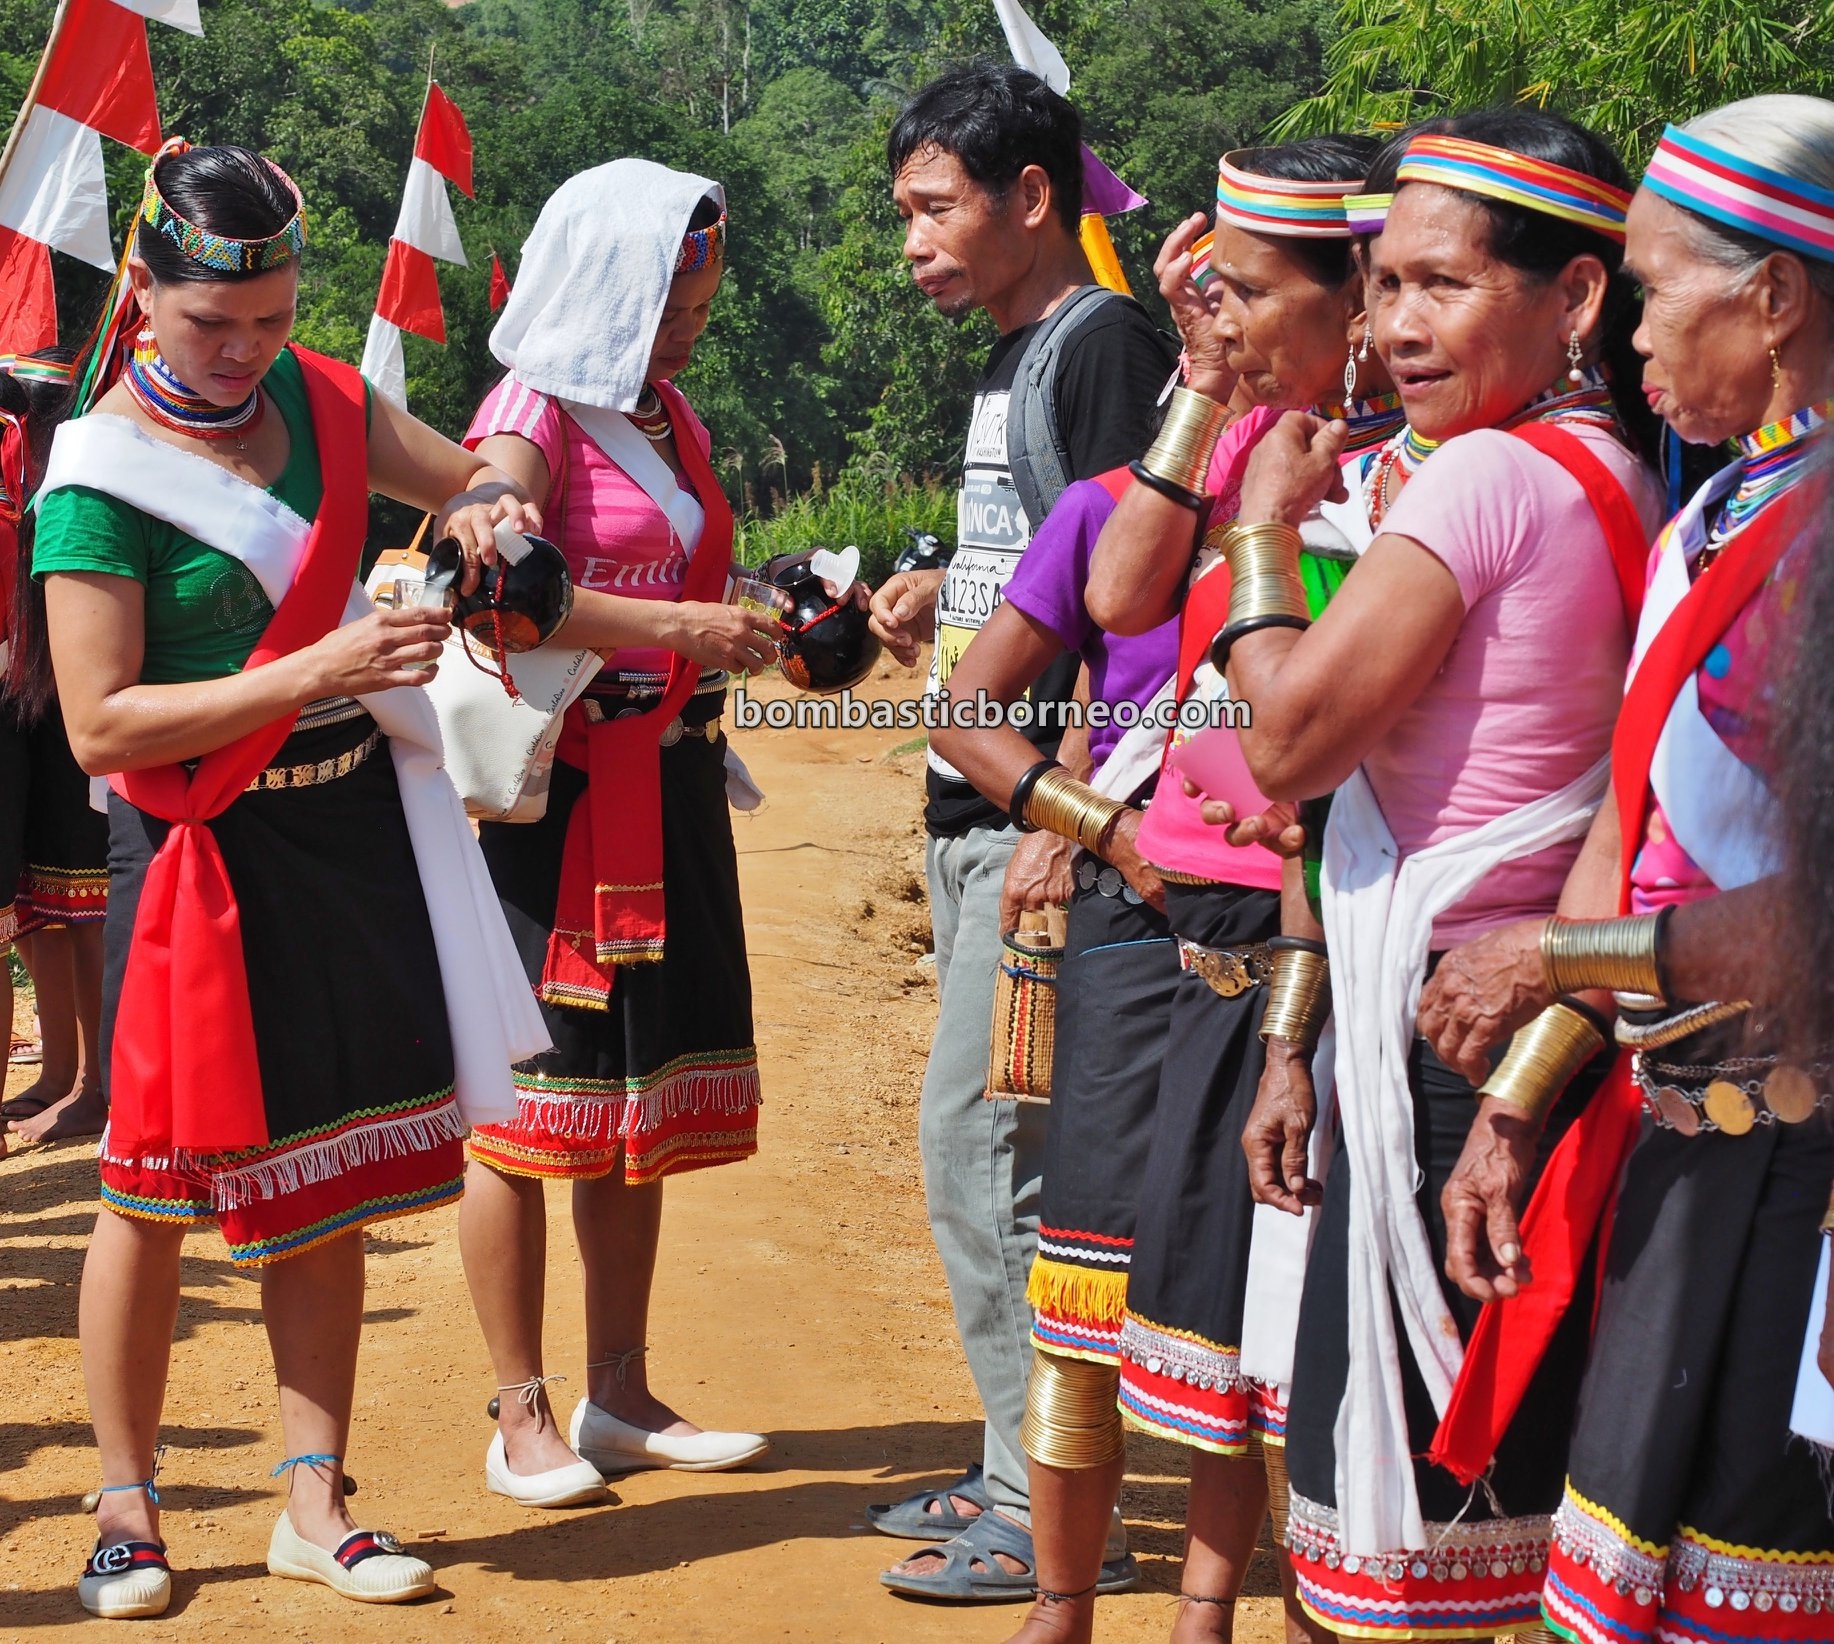 Gawai harvest festival, Sungkung Medeng, copper ring lady, indigenous, culture, Bengkayang, Indonesia, West Kalimantan, Dayak Bidayuh, native, tribe, tourist attraction, travel guide, Trans Border, Borneo